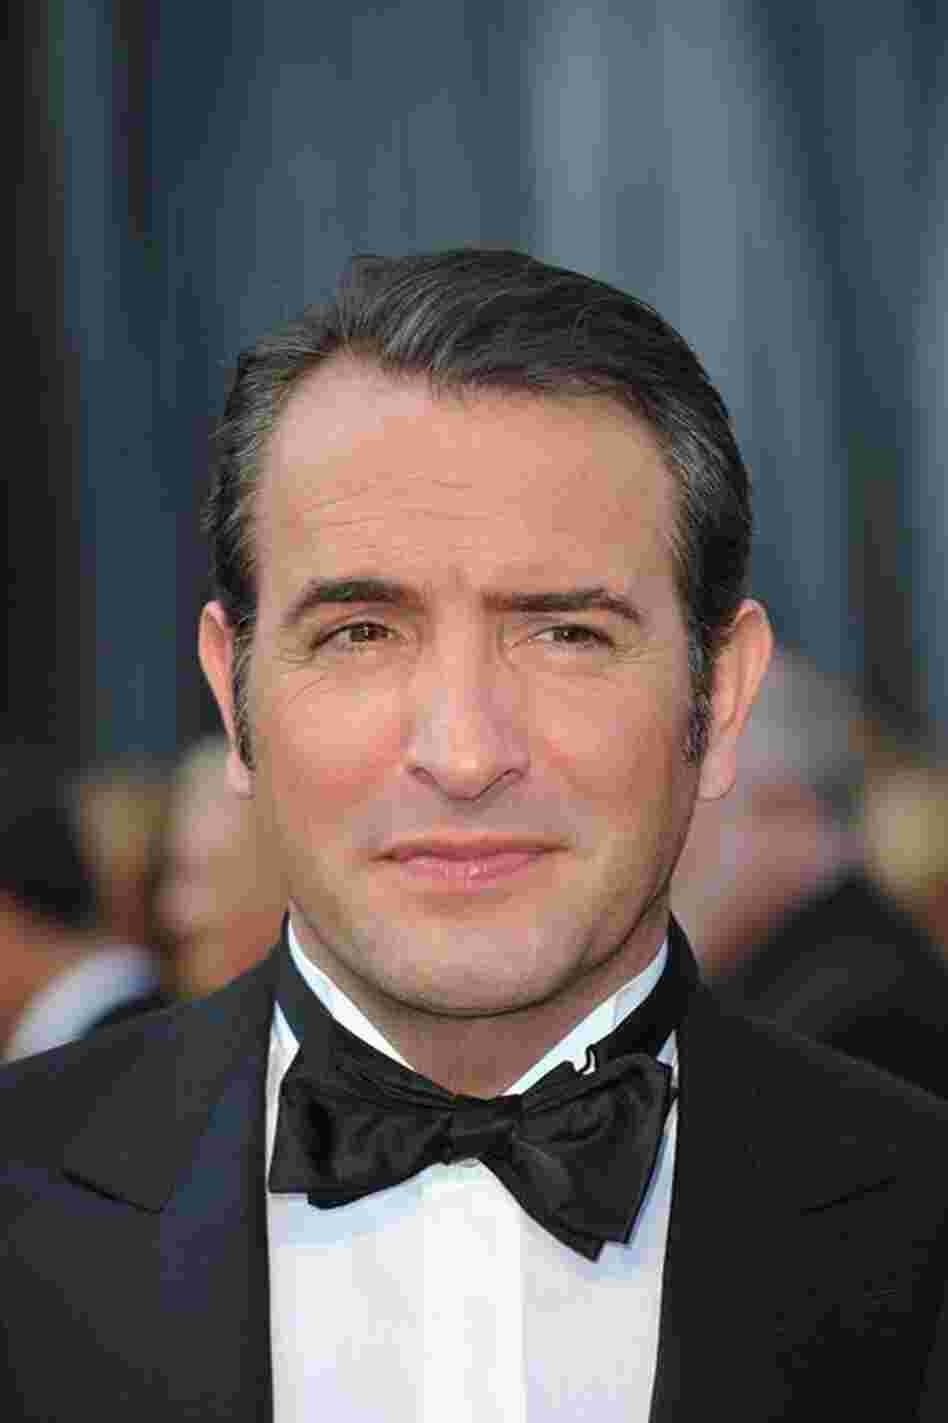 French actor Jean Dujardin was nominated for Best Actor for The Artist — the night's favorite to take home the Best Picture statue.